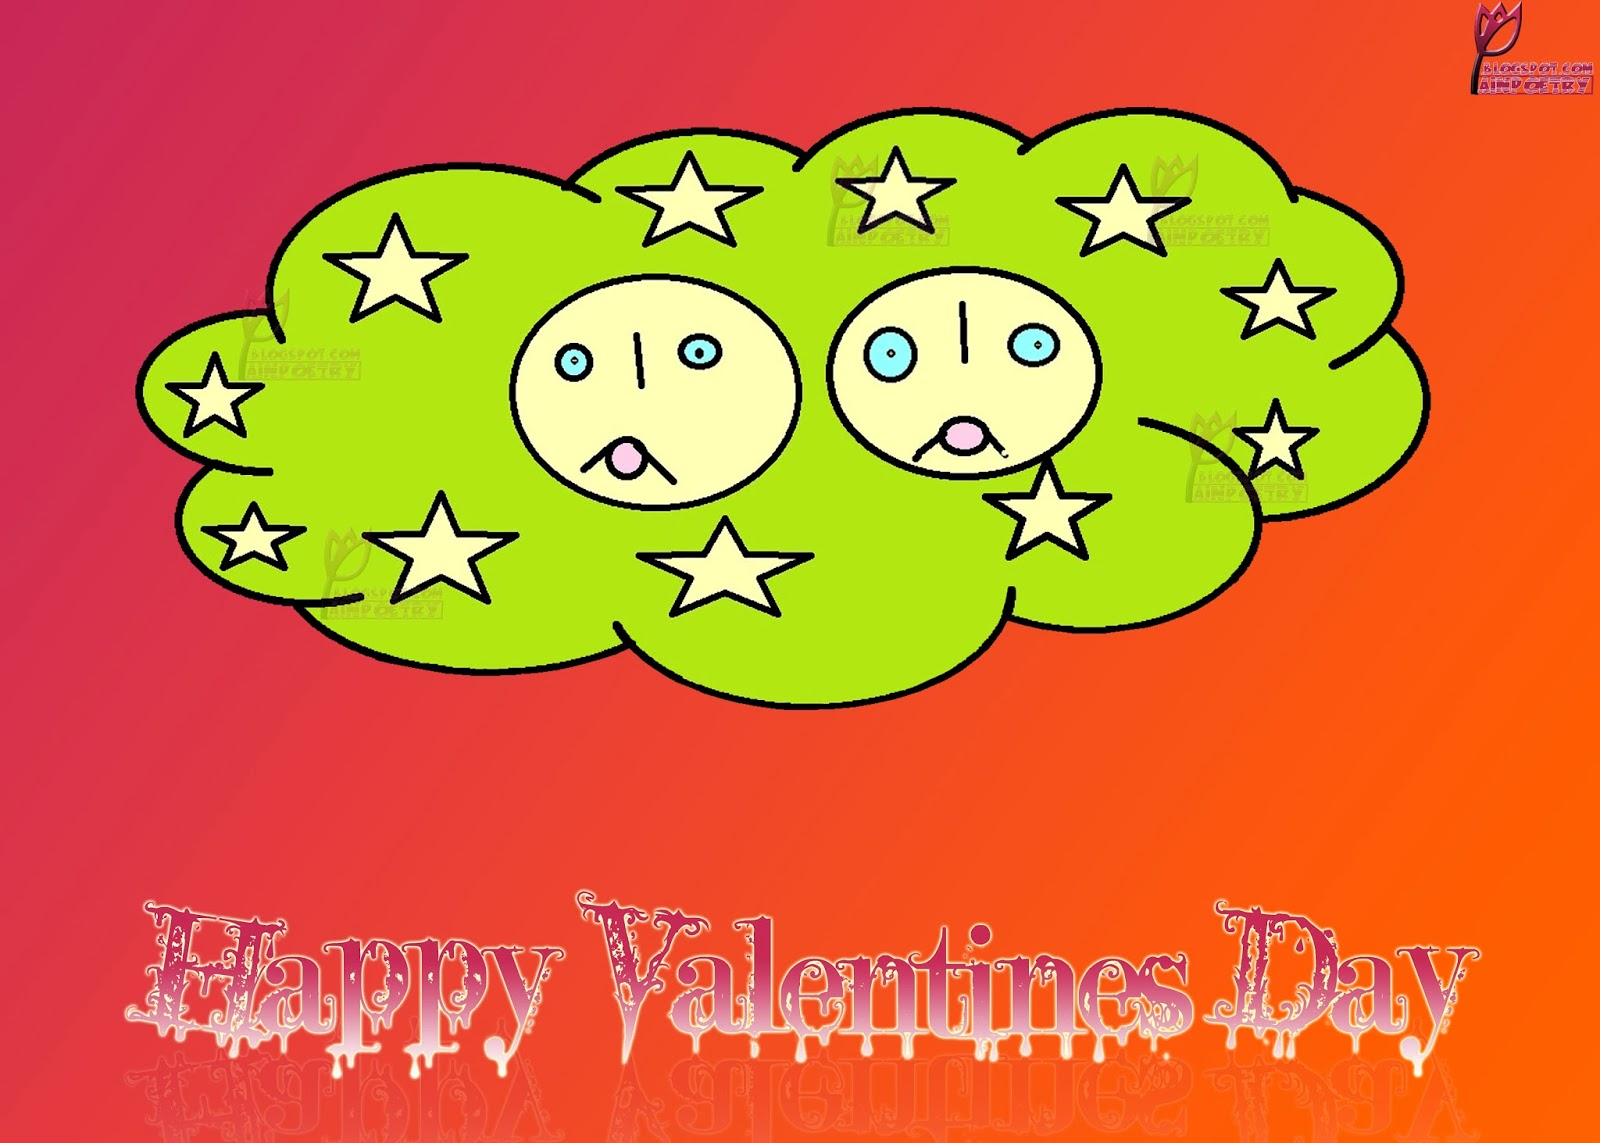 Happy-Valentines-Day-Wallpaper-Wishes-With-Cloud-Cartoon-Image-HD-Wide